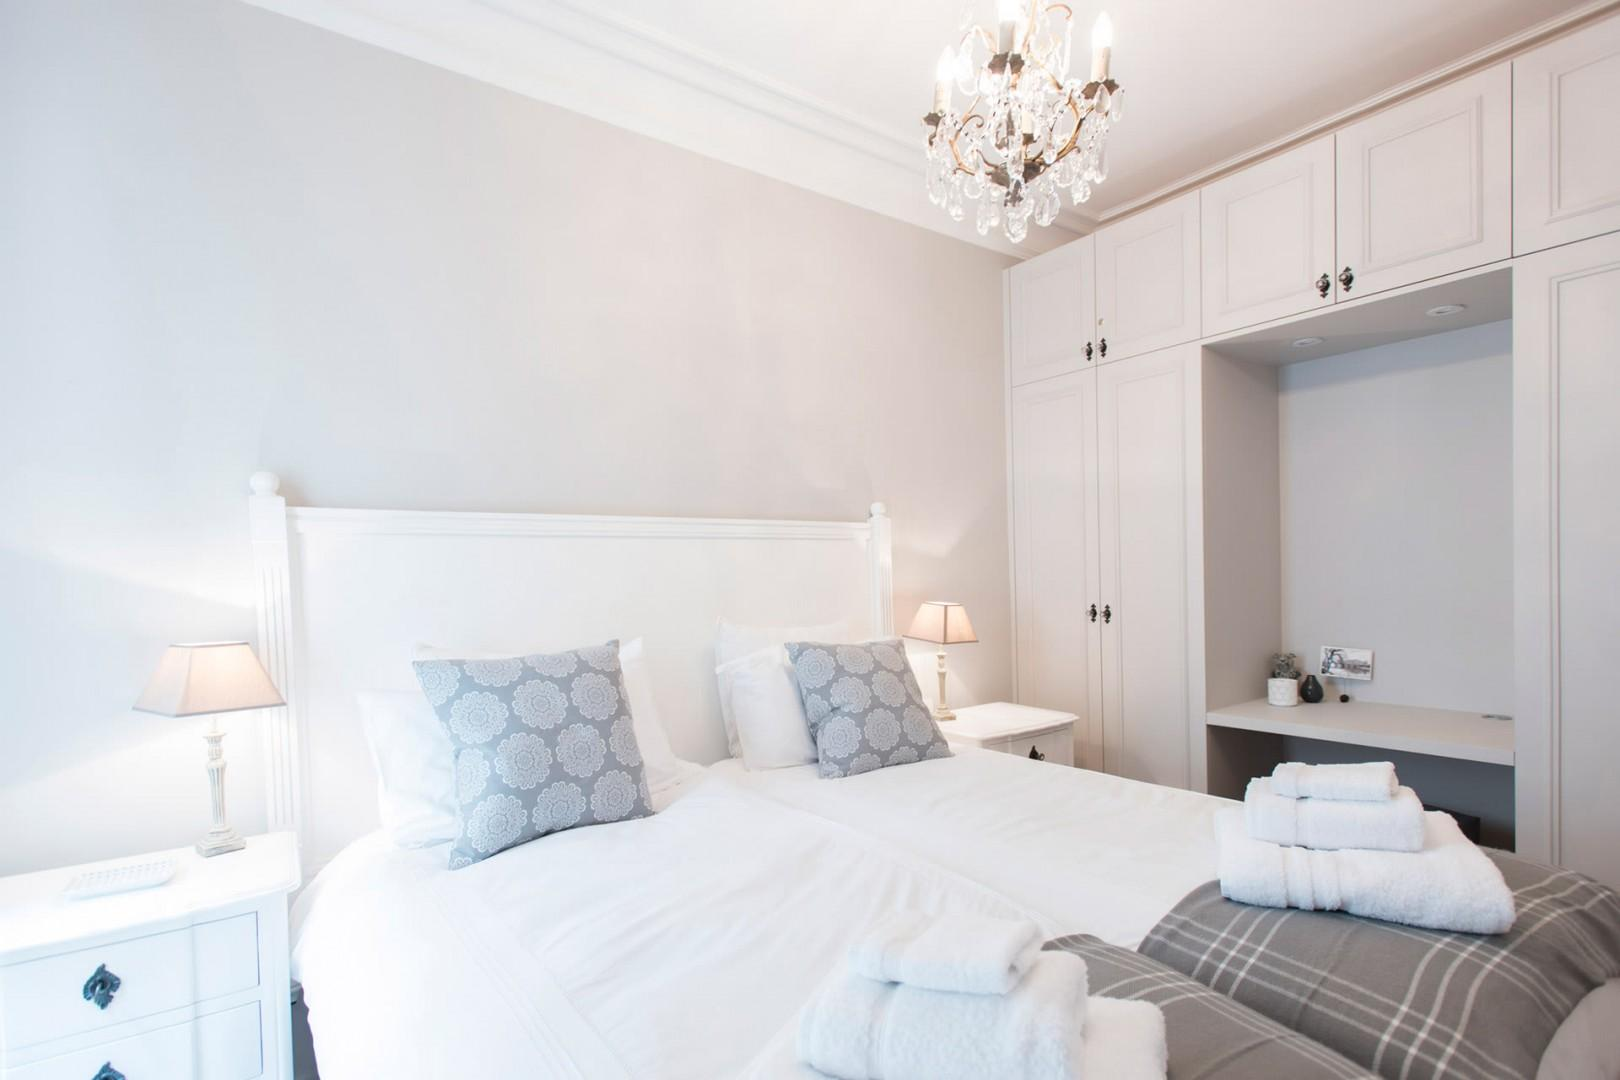 Design elements are soft and welcoming in bedroom 2.